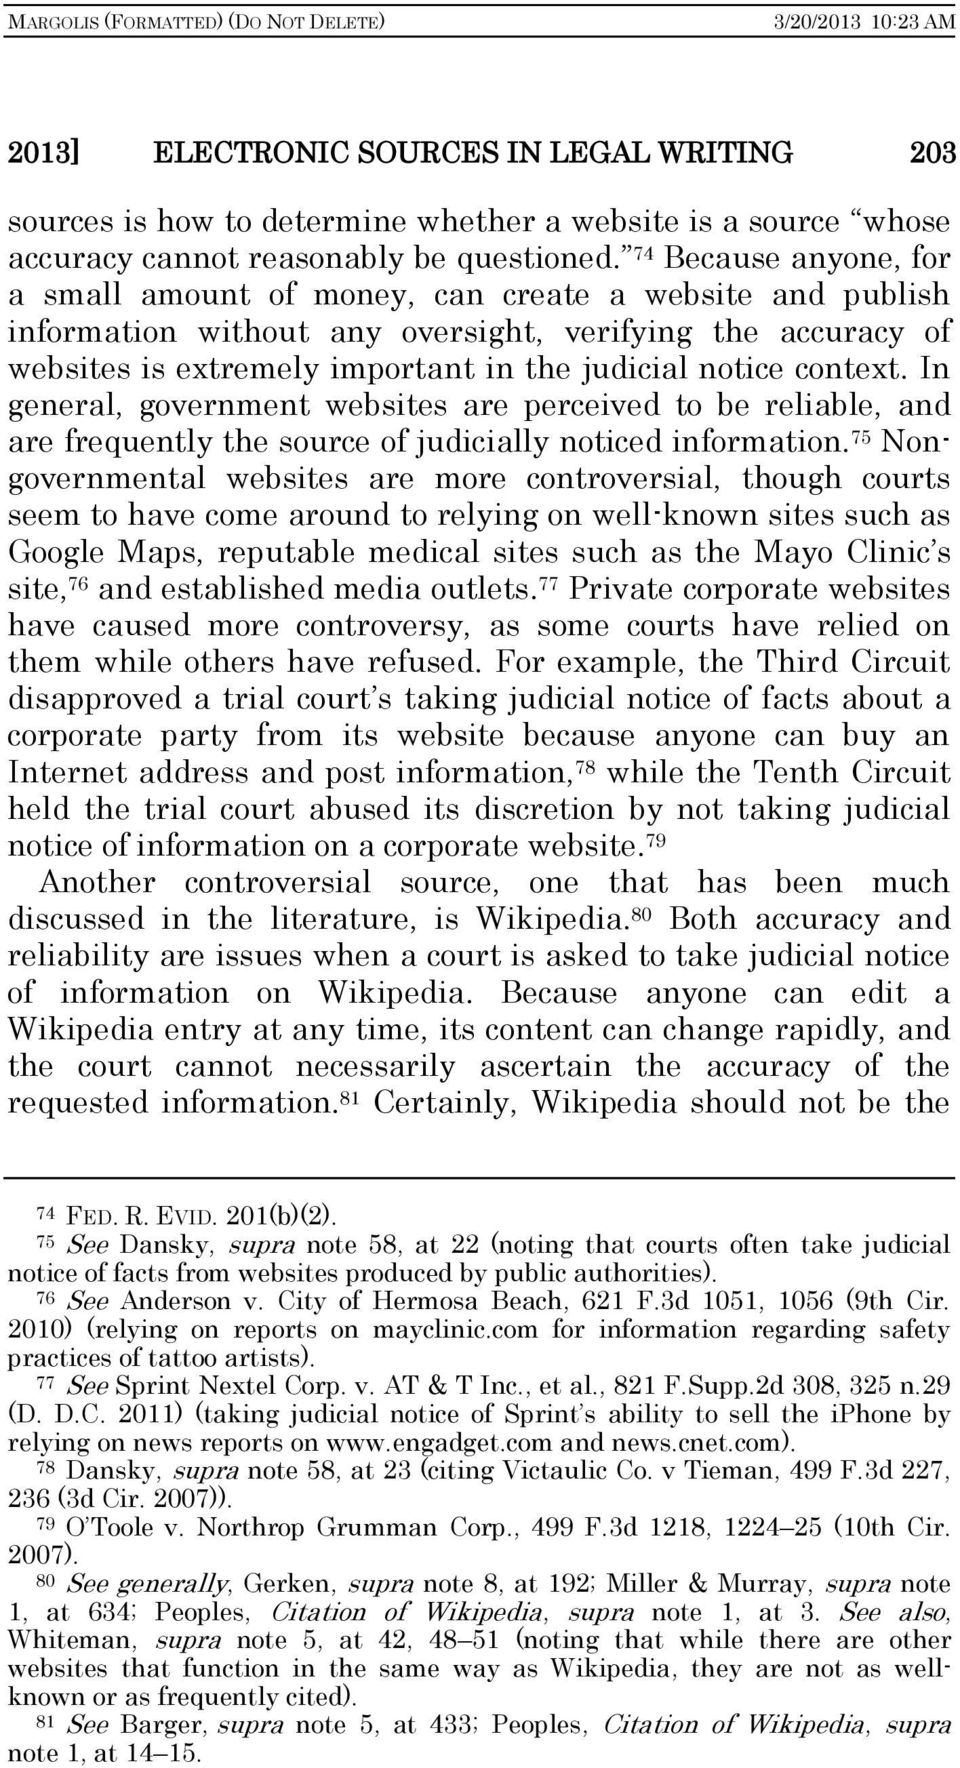 context. In general, government websites are perceived to be reliable, and are frequently the source of judicially noticed information.